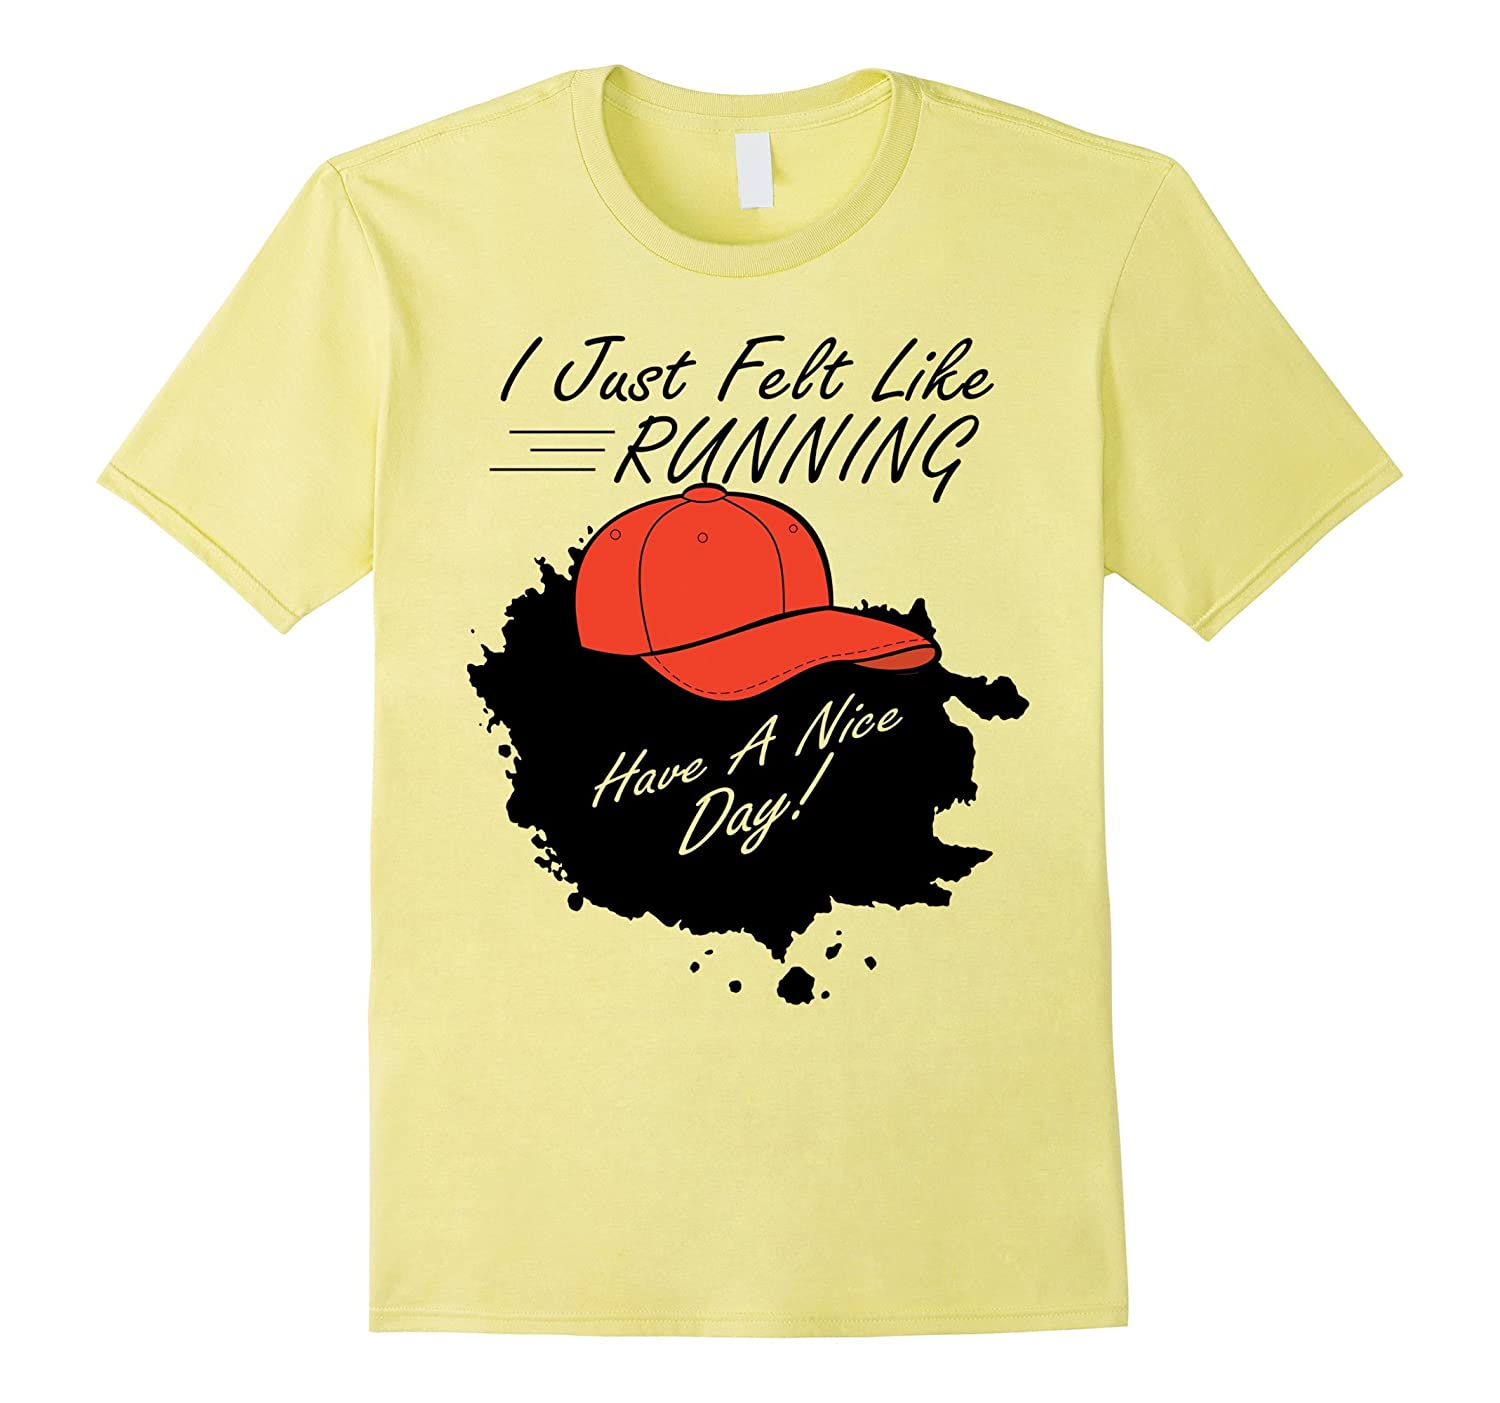 I Just Felt Like Running Halloween Costume T-shirt